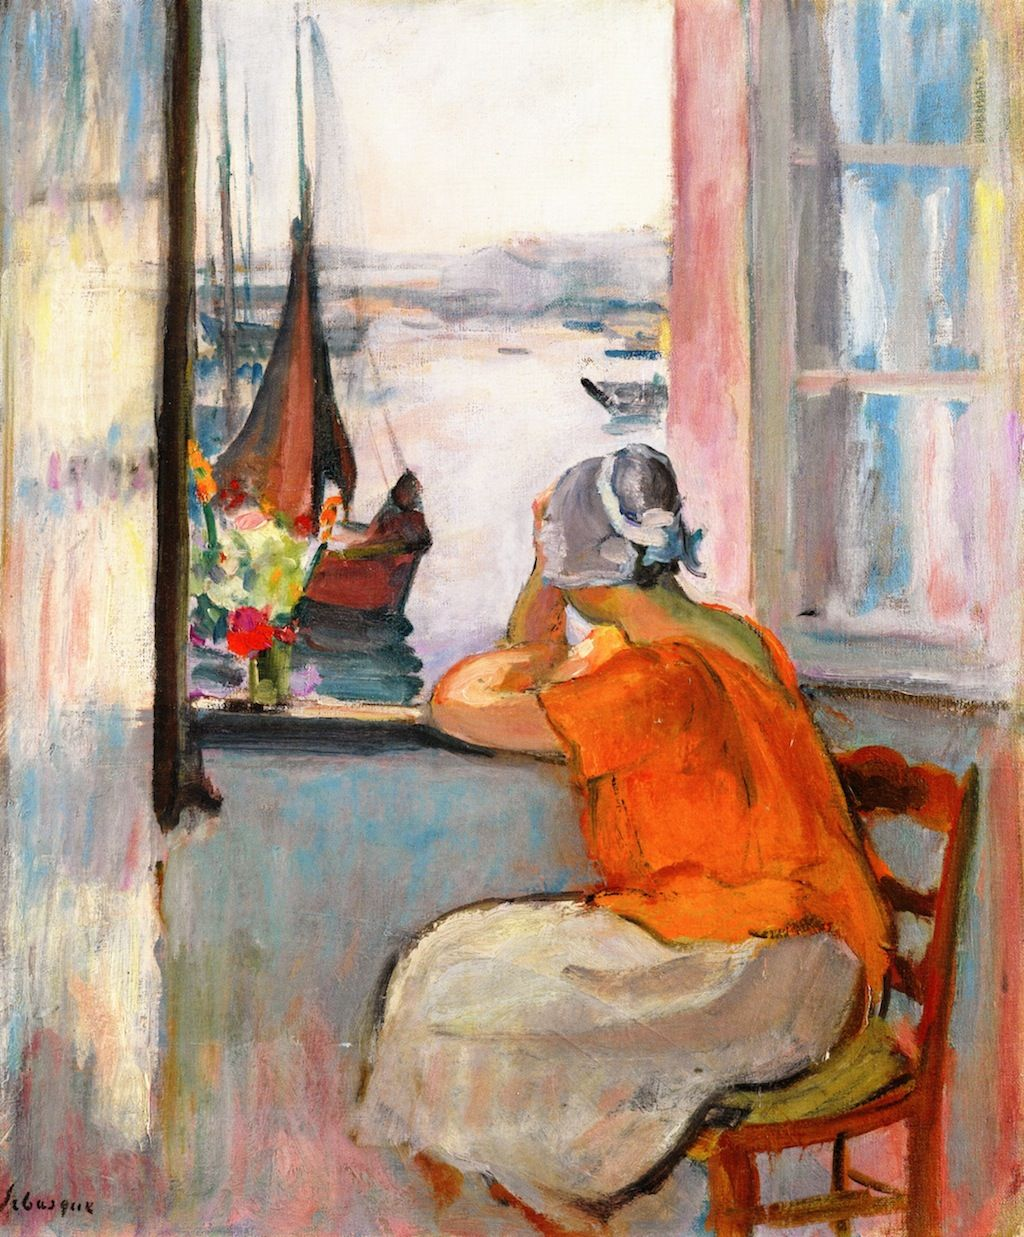 henri lebasque jeuen femme devant la fenetre ouverte a l ile d yeu 1920 henri lebasque. Black Bedroom Furniture Sets. Home Design Ideas